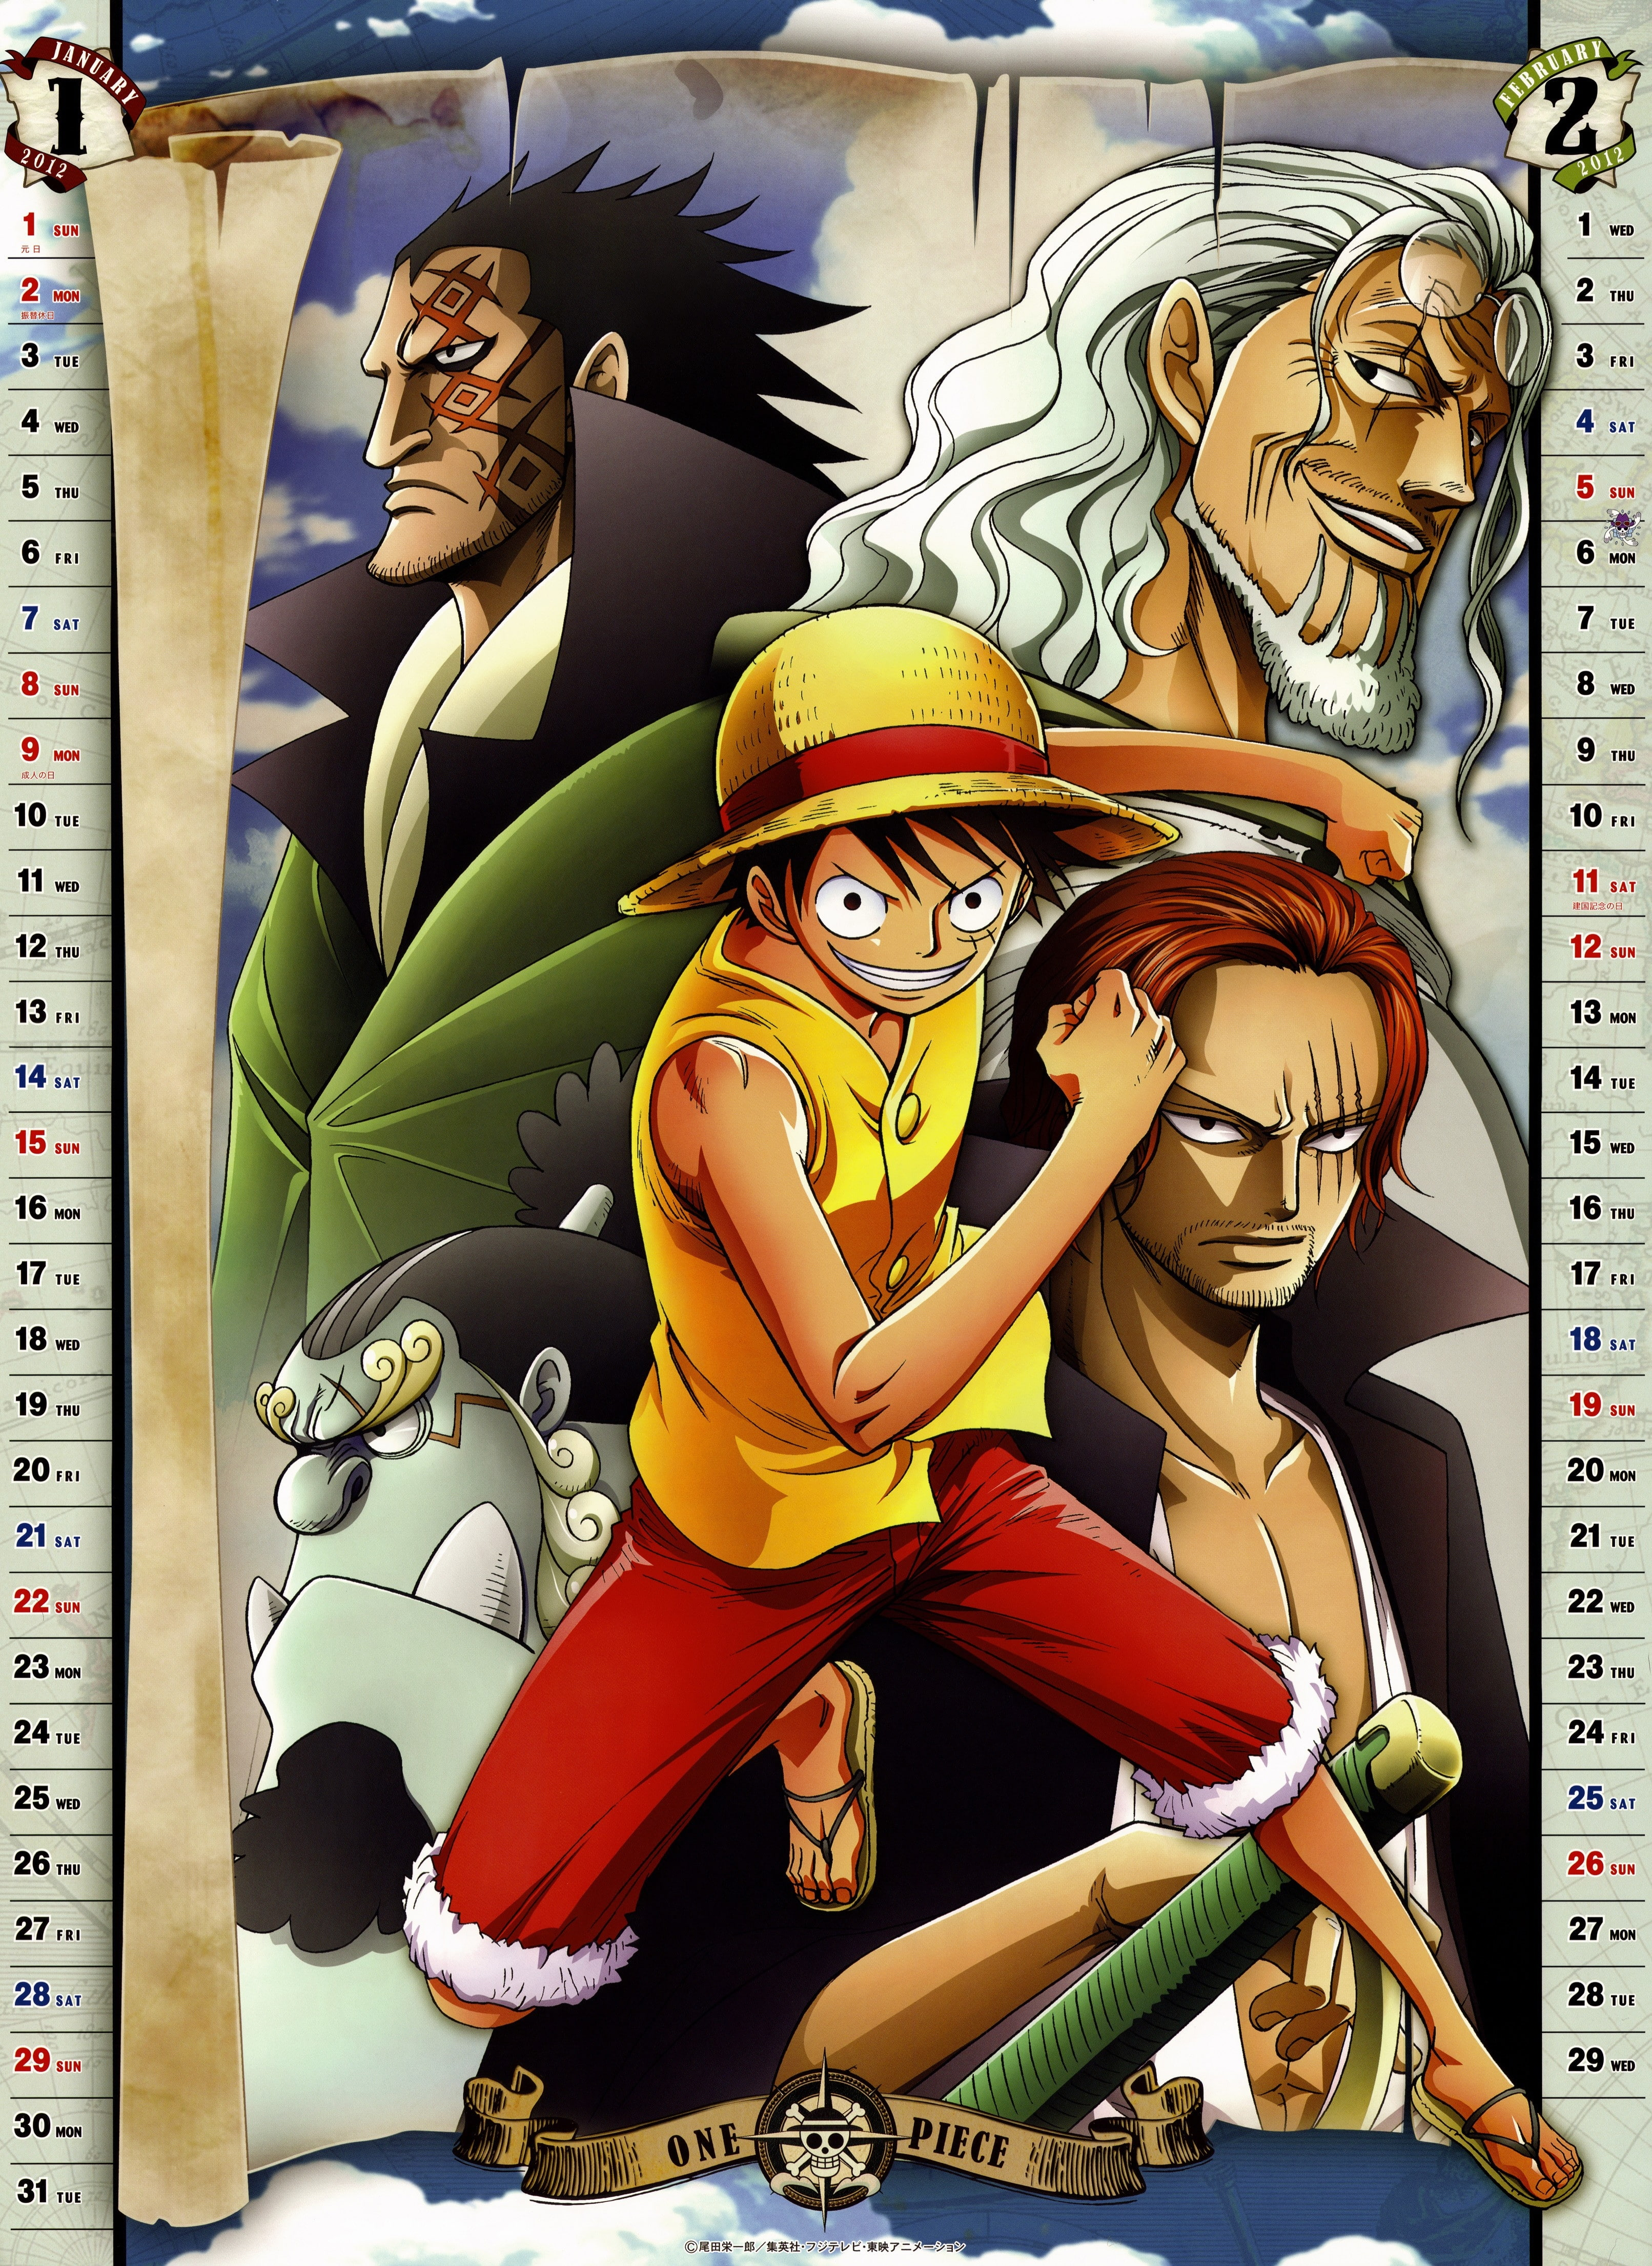 Android One Piece Wallpaper Phone - HD Wallpaper